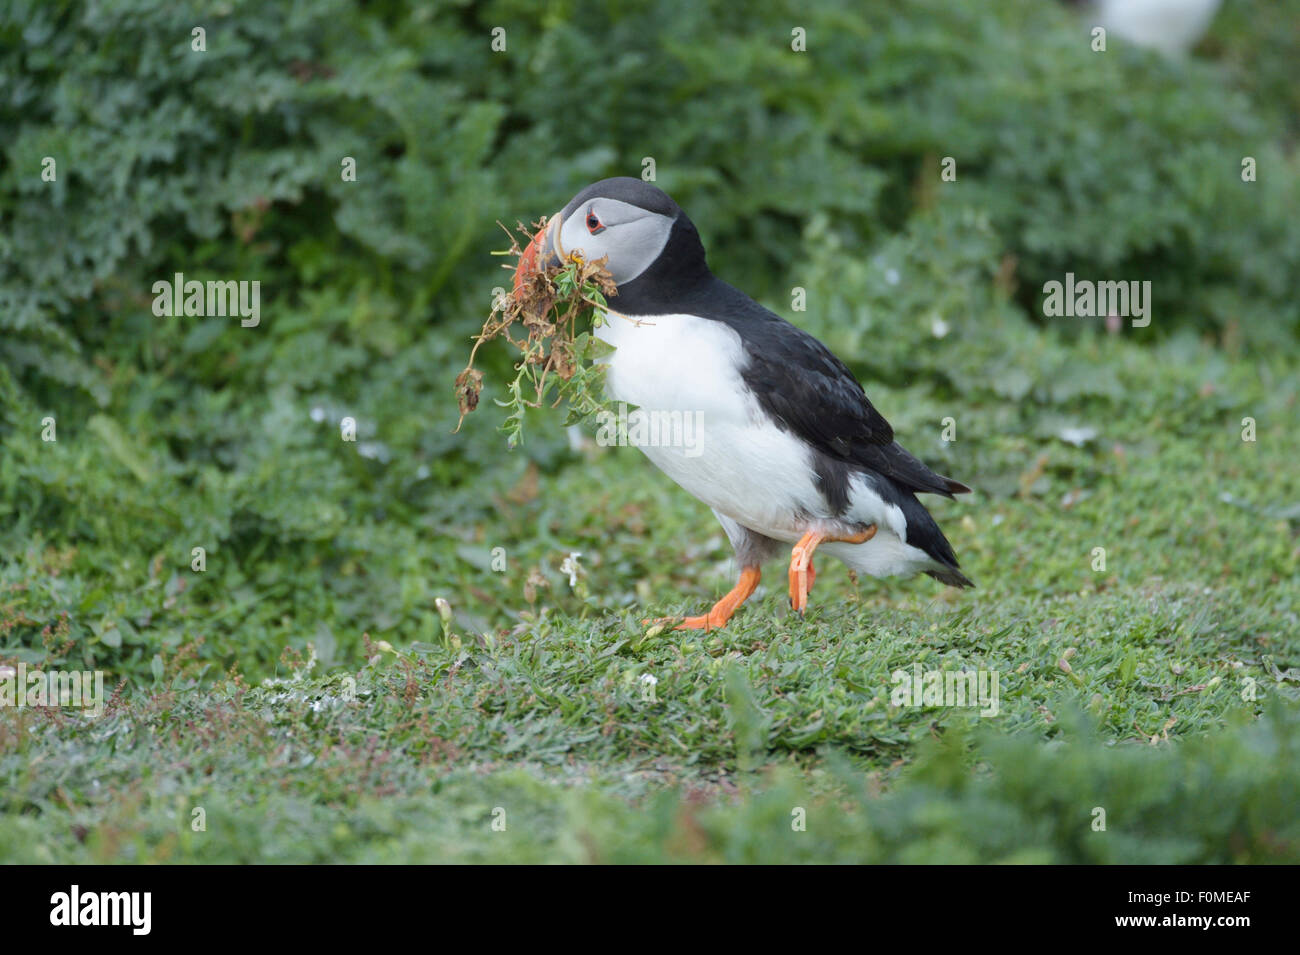 Puffin (Fratercula arctica) collecting vegetation for nesting burrow - Stock Image